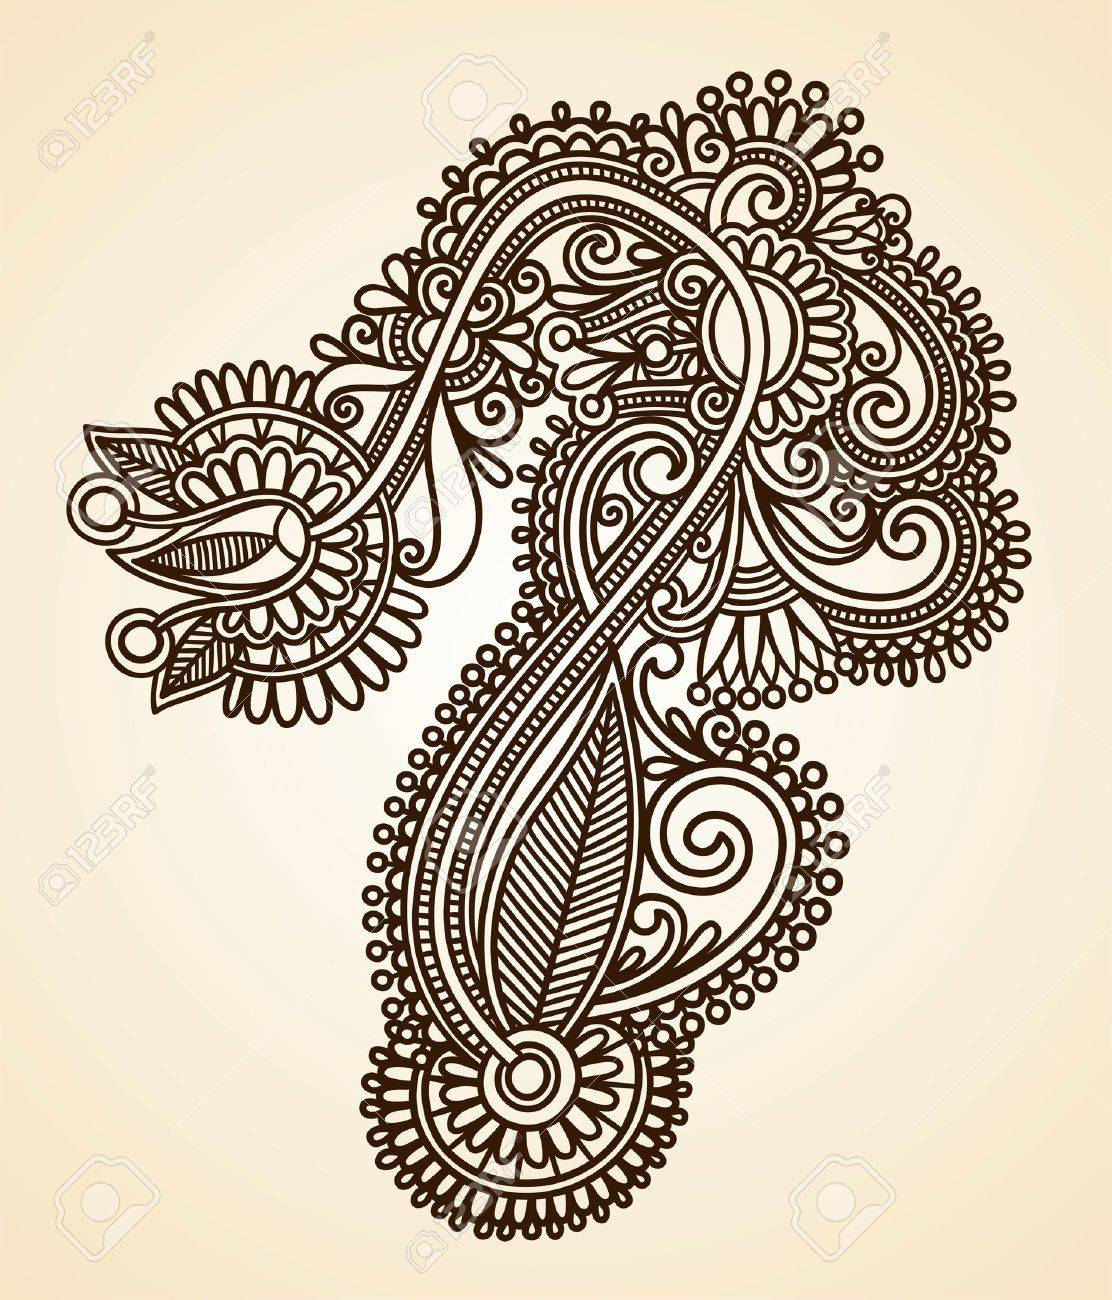 Hand-Drawn Abstract Henna Mendie Flowers Doodle Vector Illustration Design Element Stock Vector - 11189137